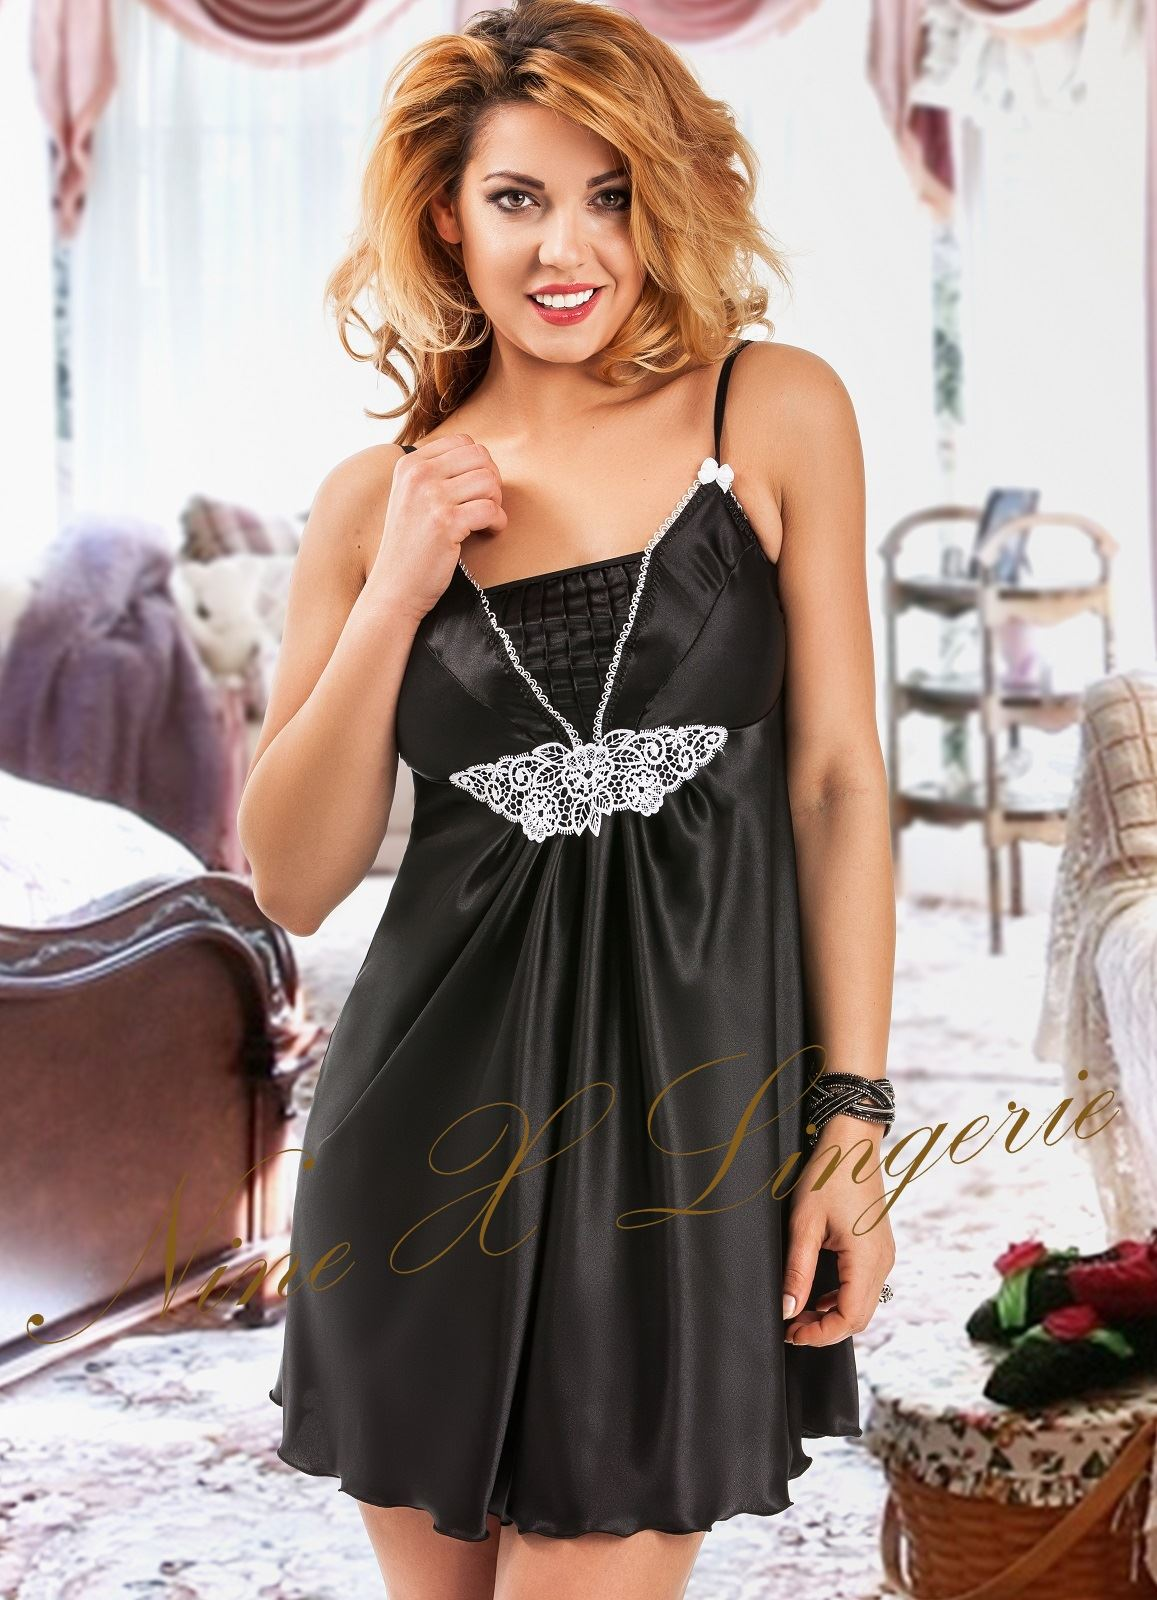 dress style and body type 052d